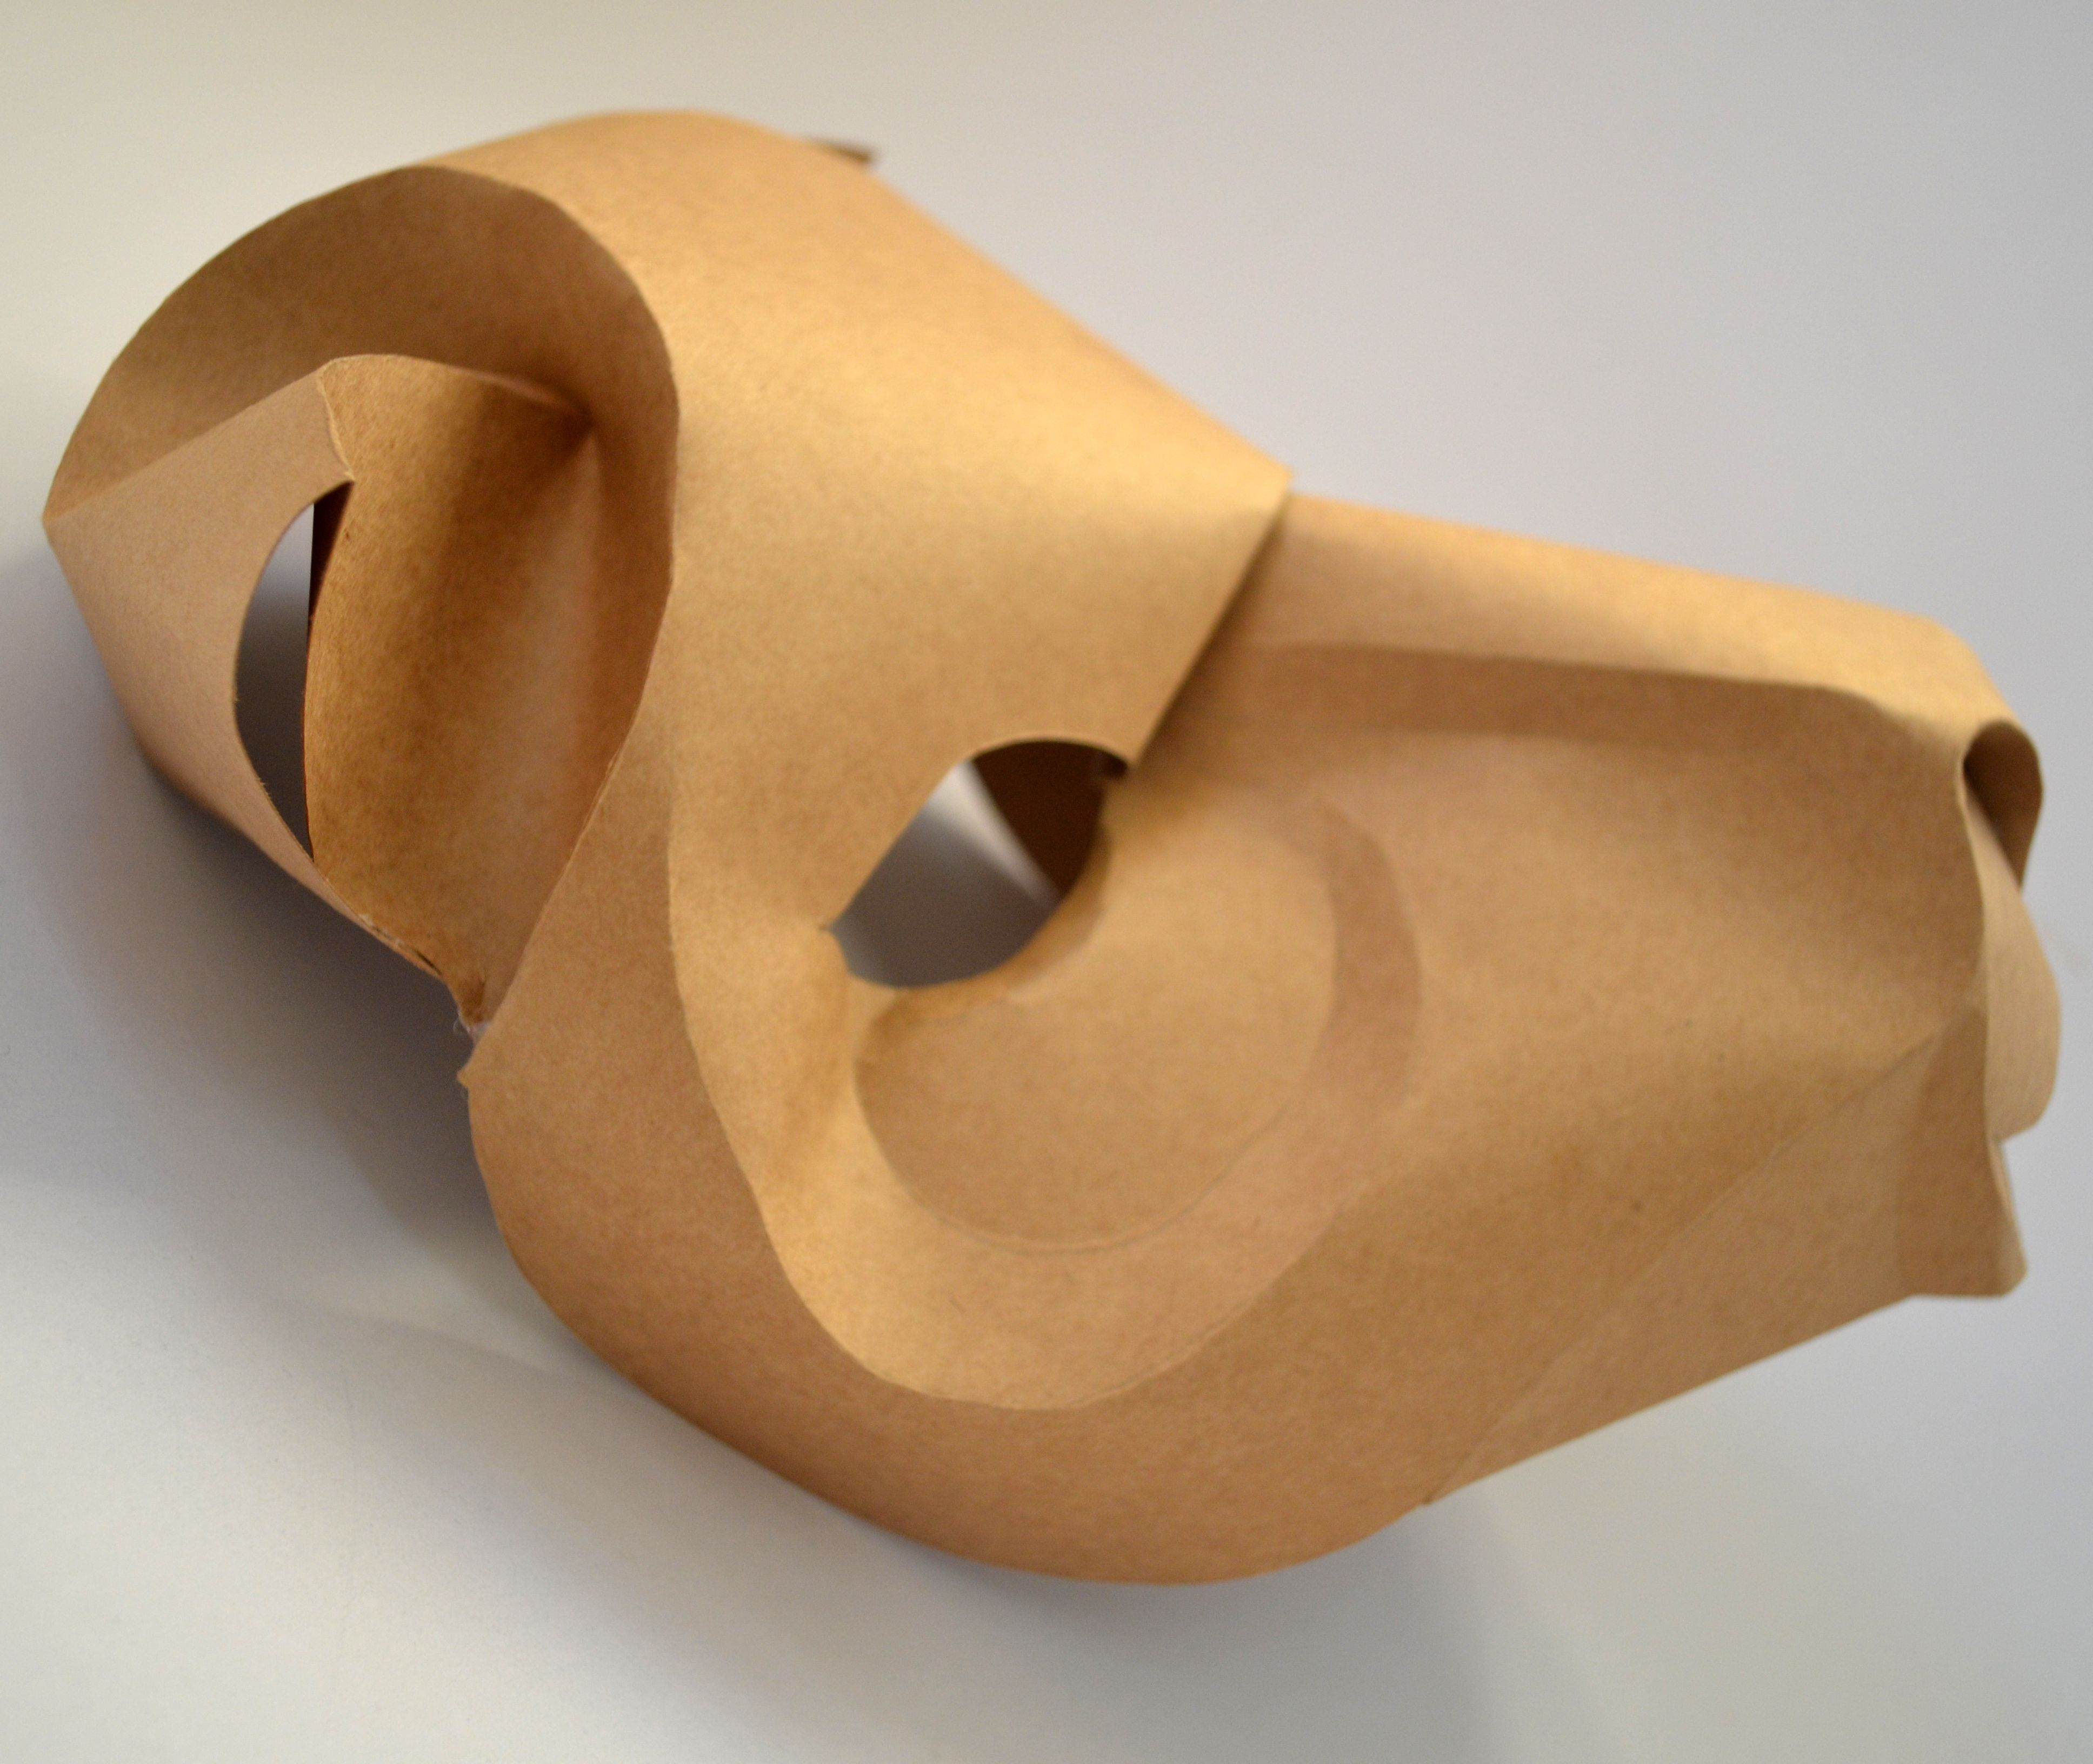 Lioness mask made by one piece of paper (side view)